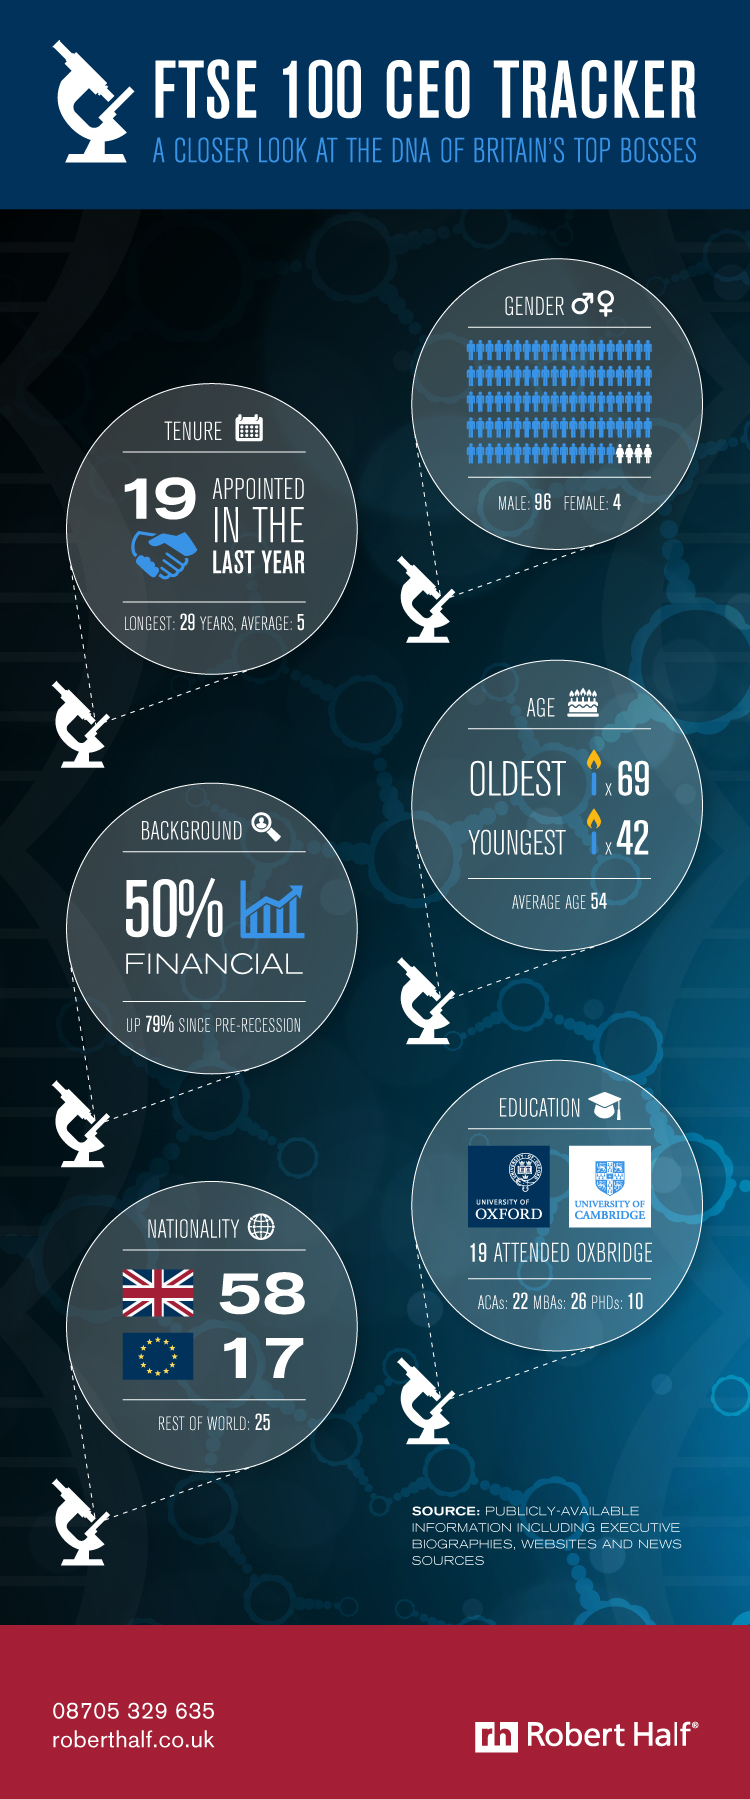 rhuk_ftse-ceo-infographic